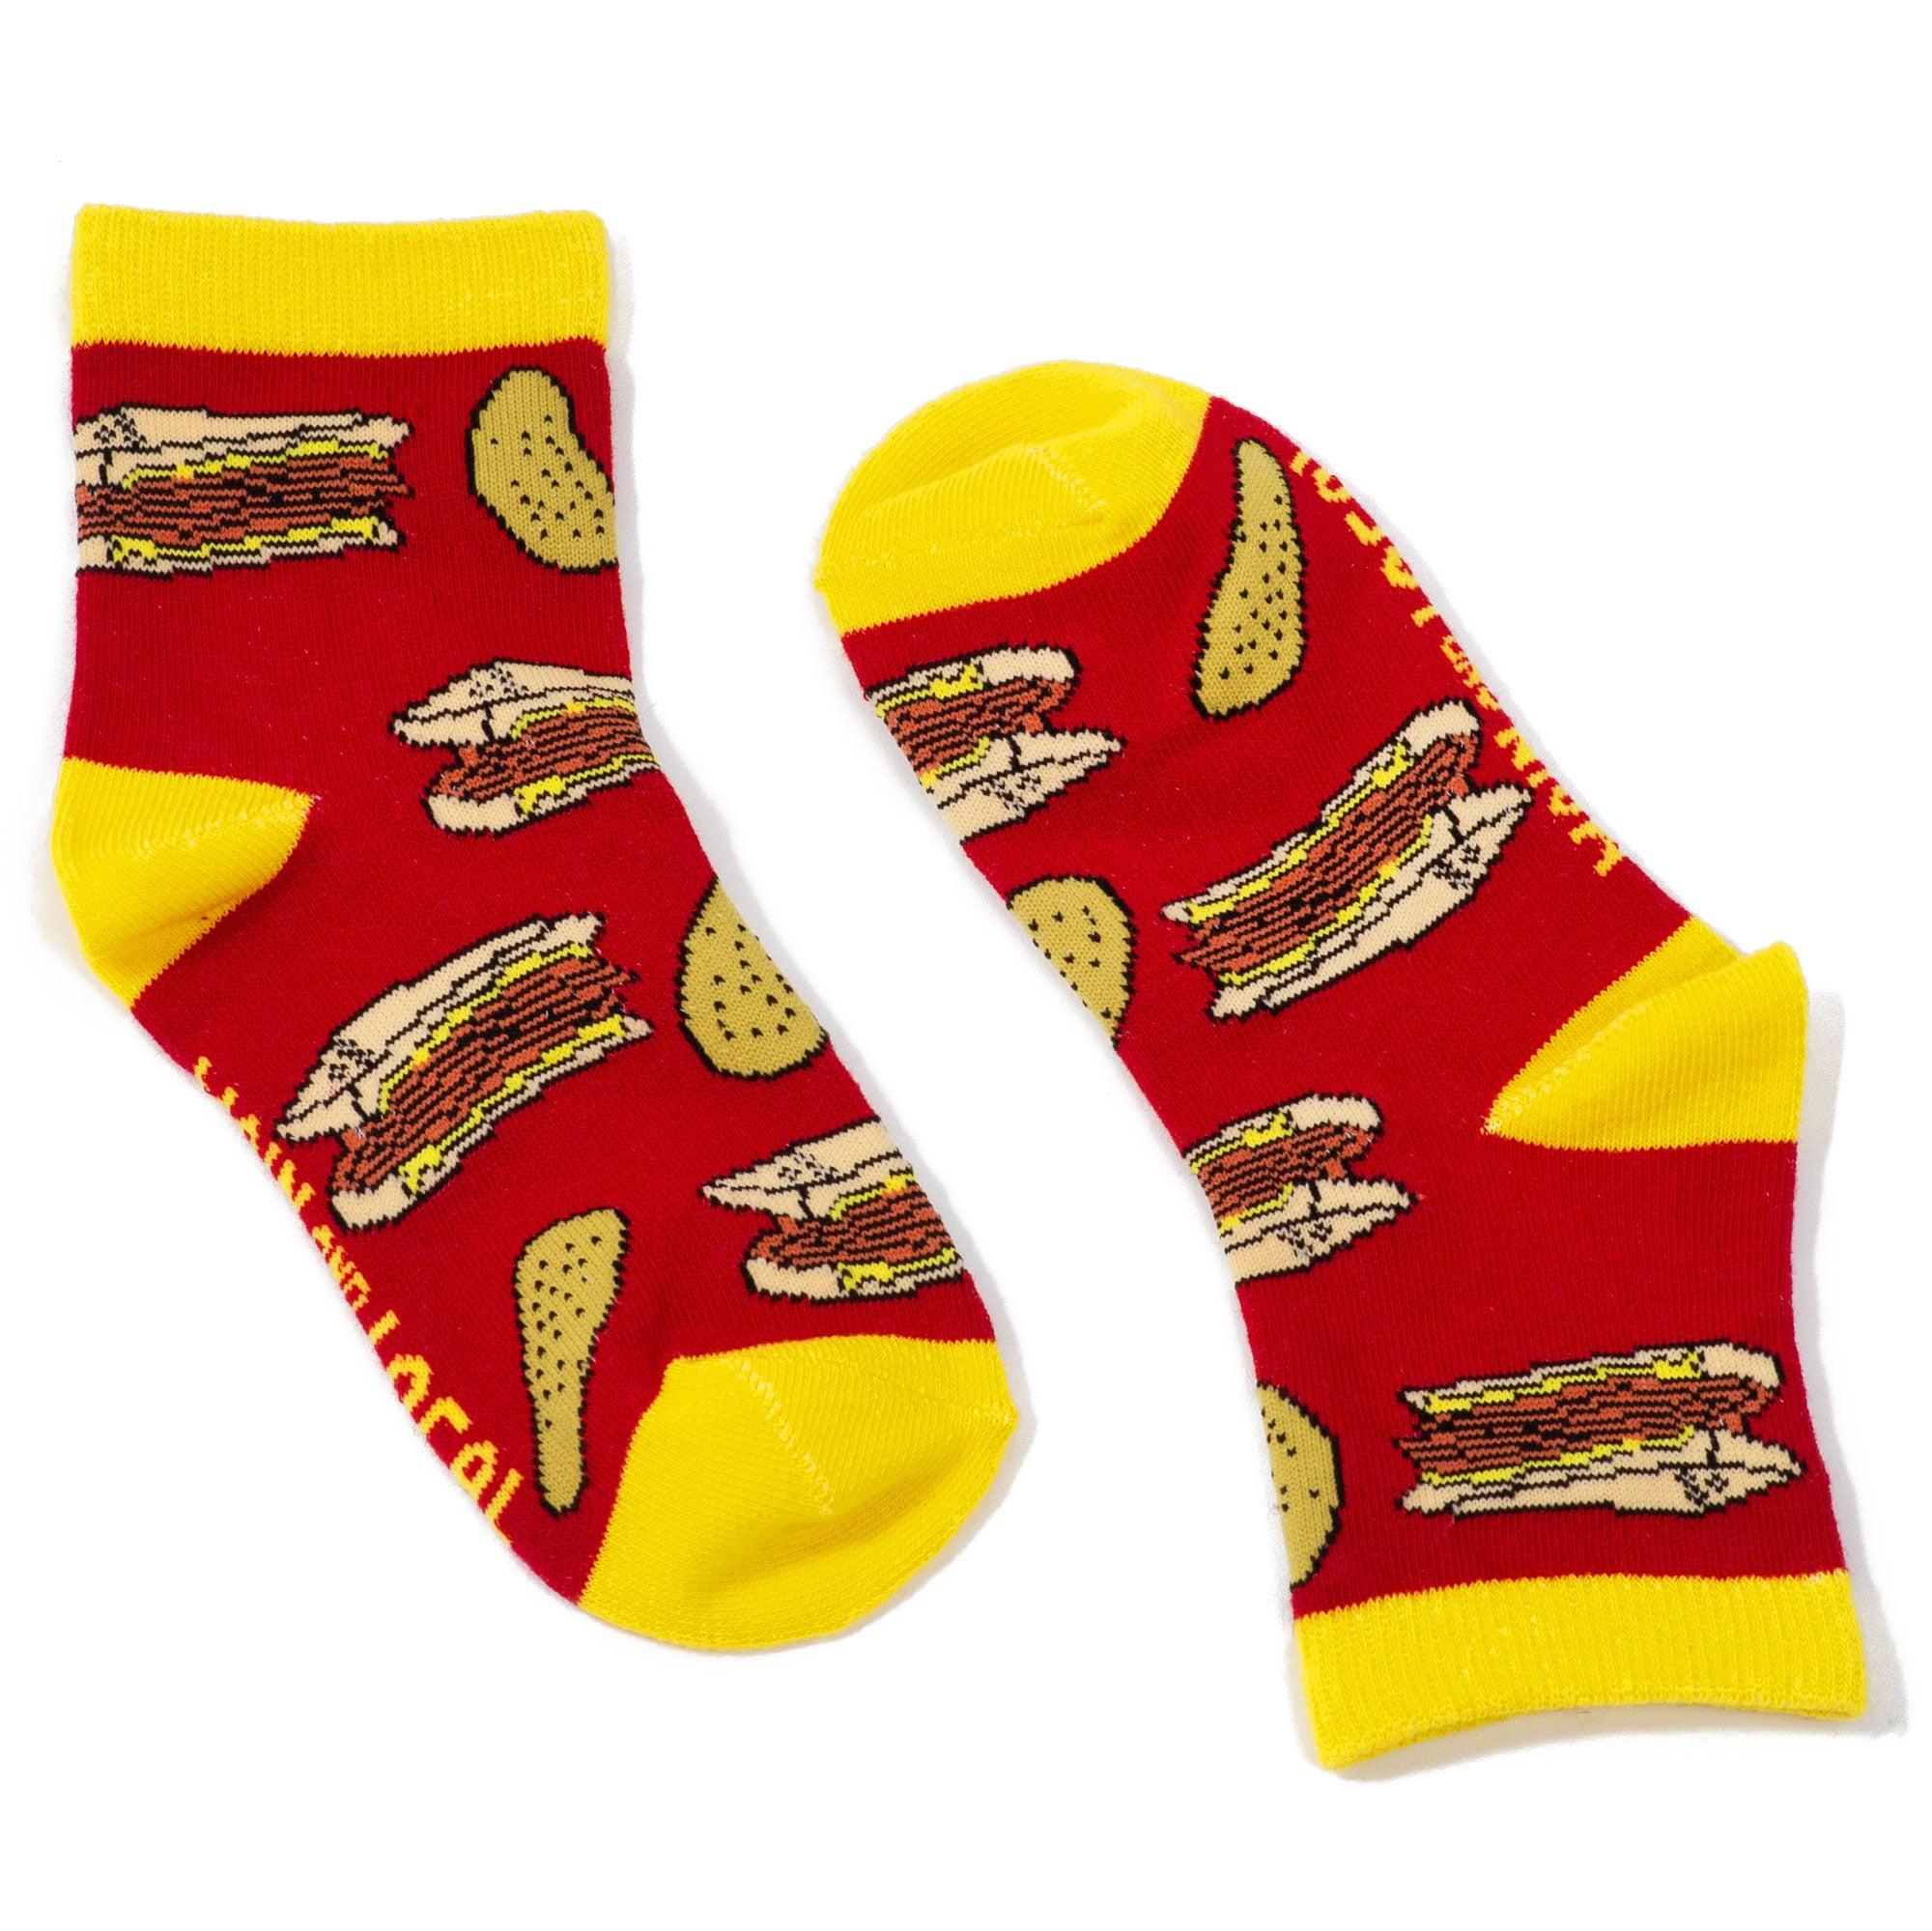 Childrens Montreal Smoked Meat Socks